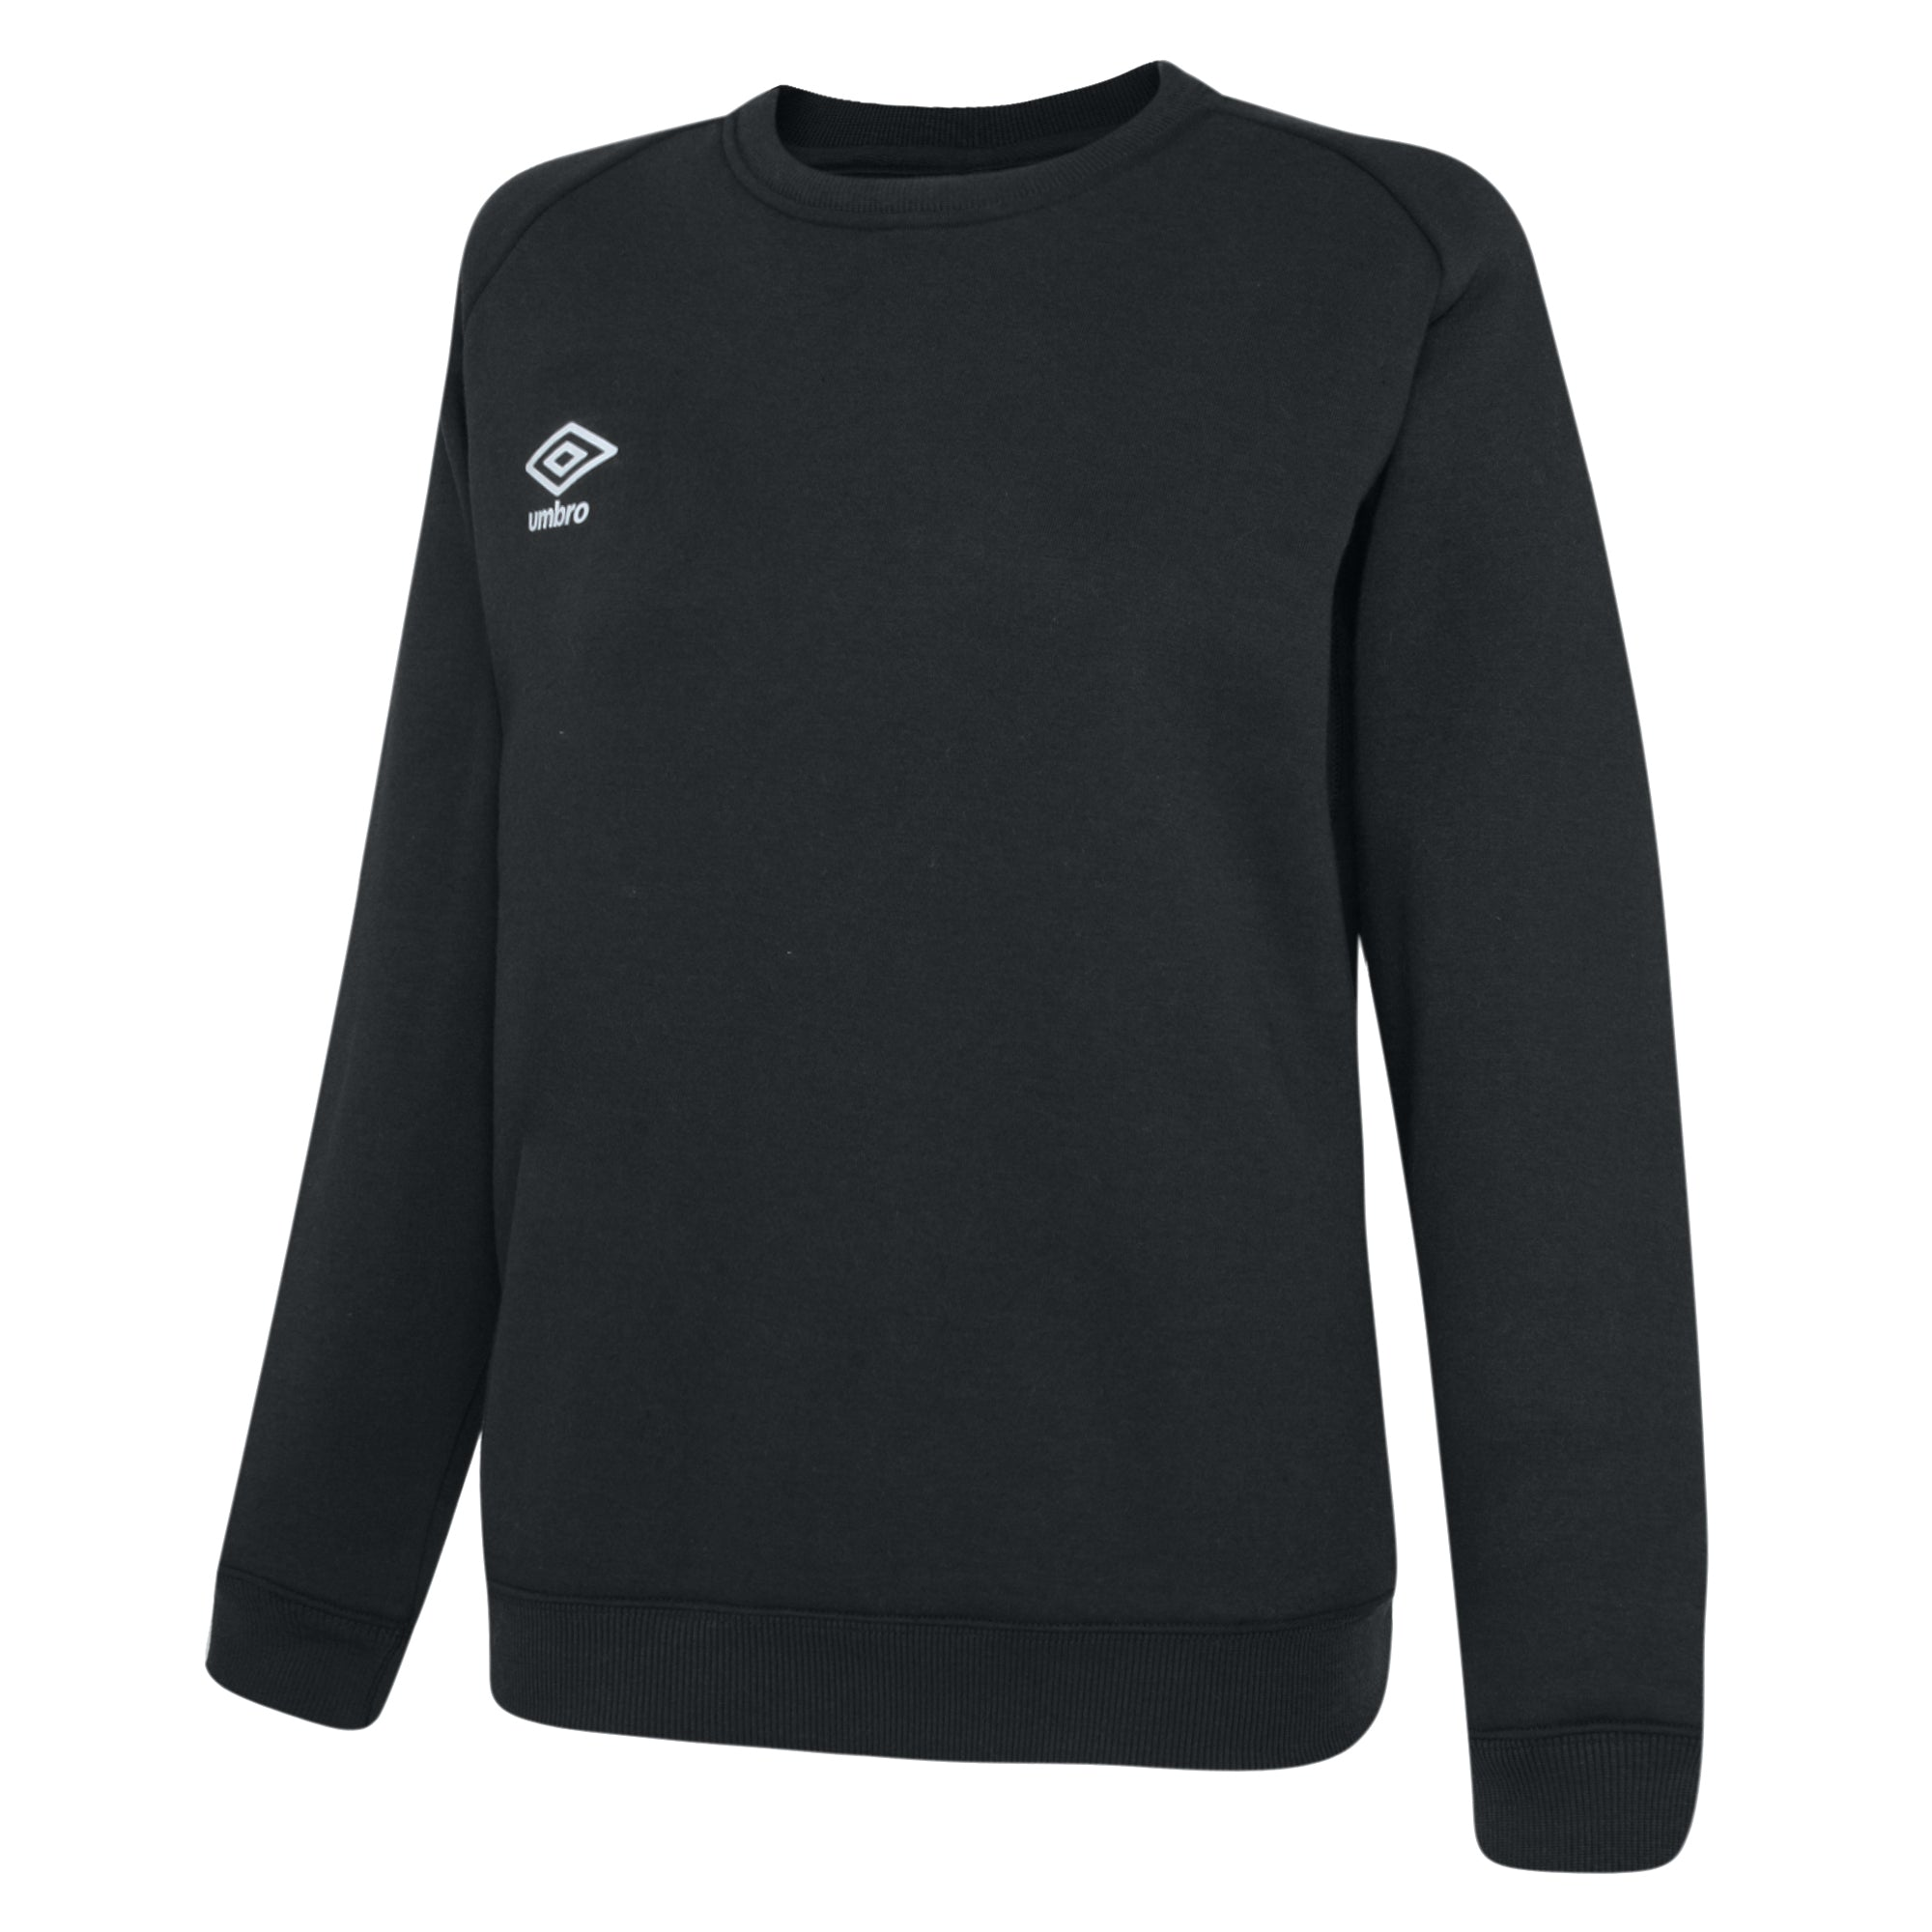 Umbro Club Leisure Women's Sweat - Black/White